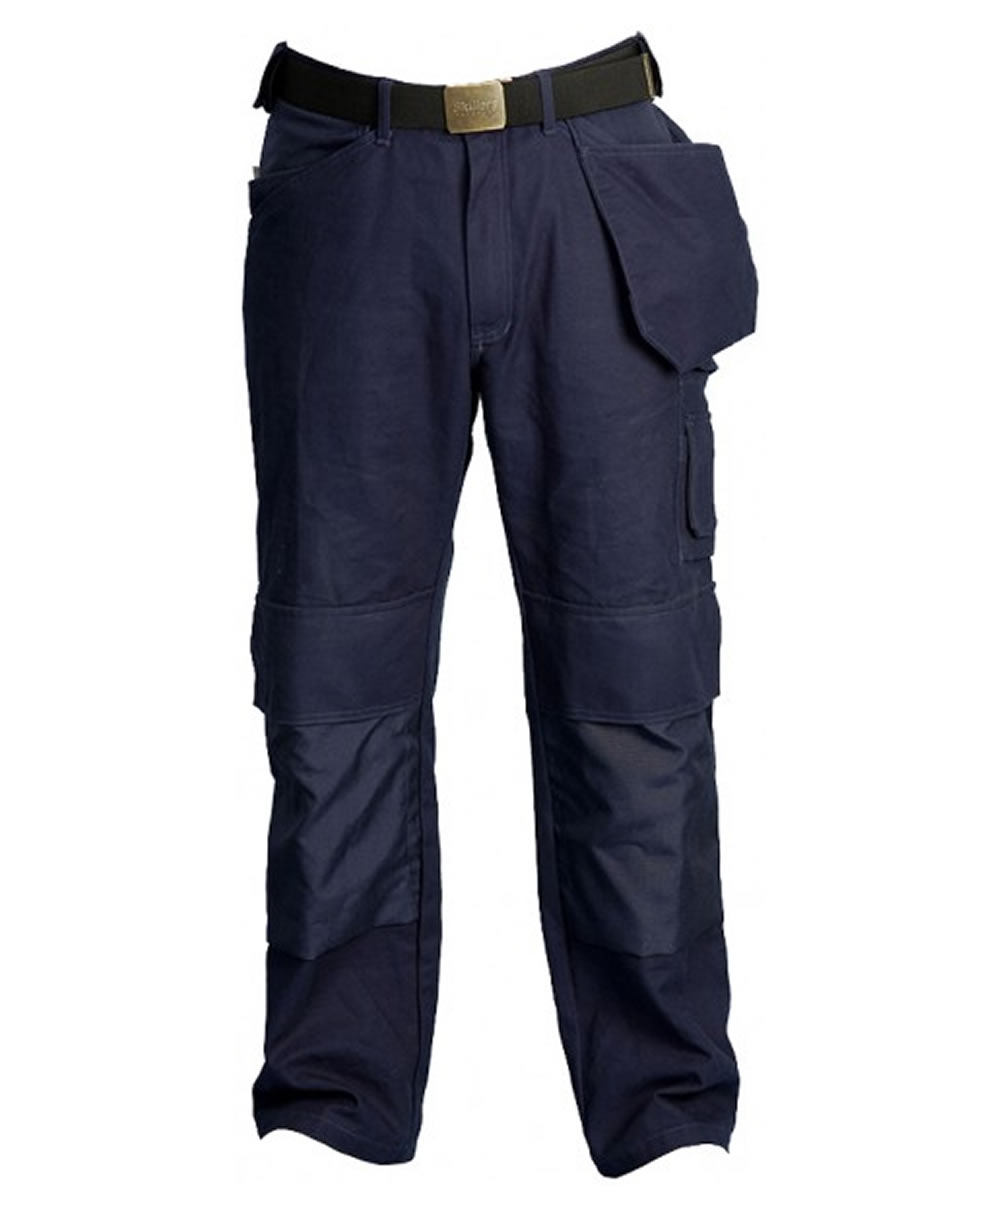 Skillers 100% Cotton Craftsmens Pants – Navy